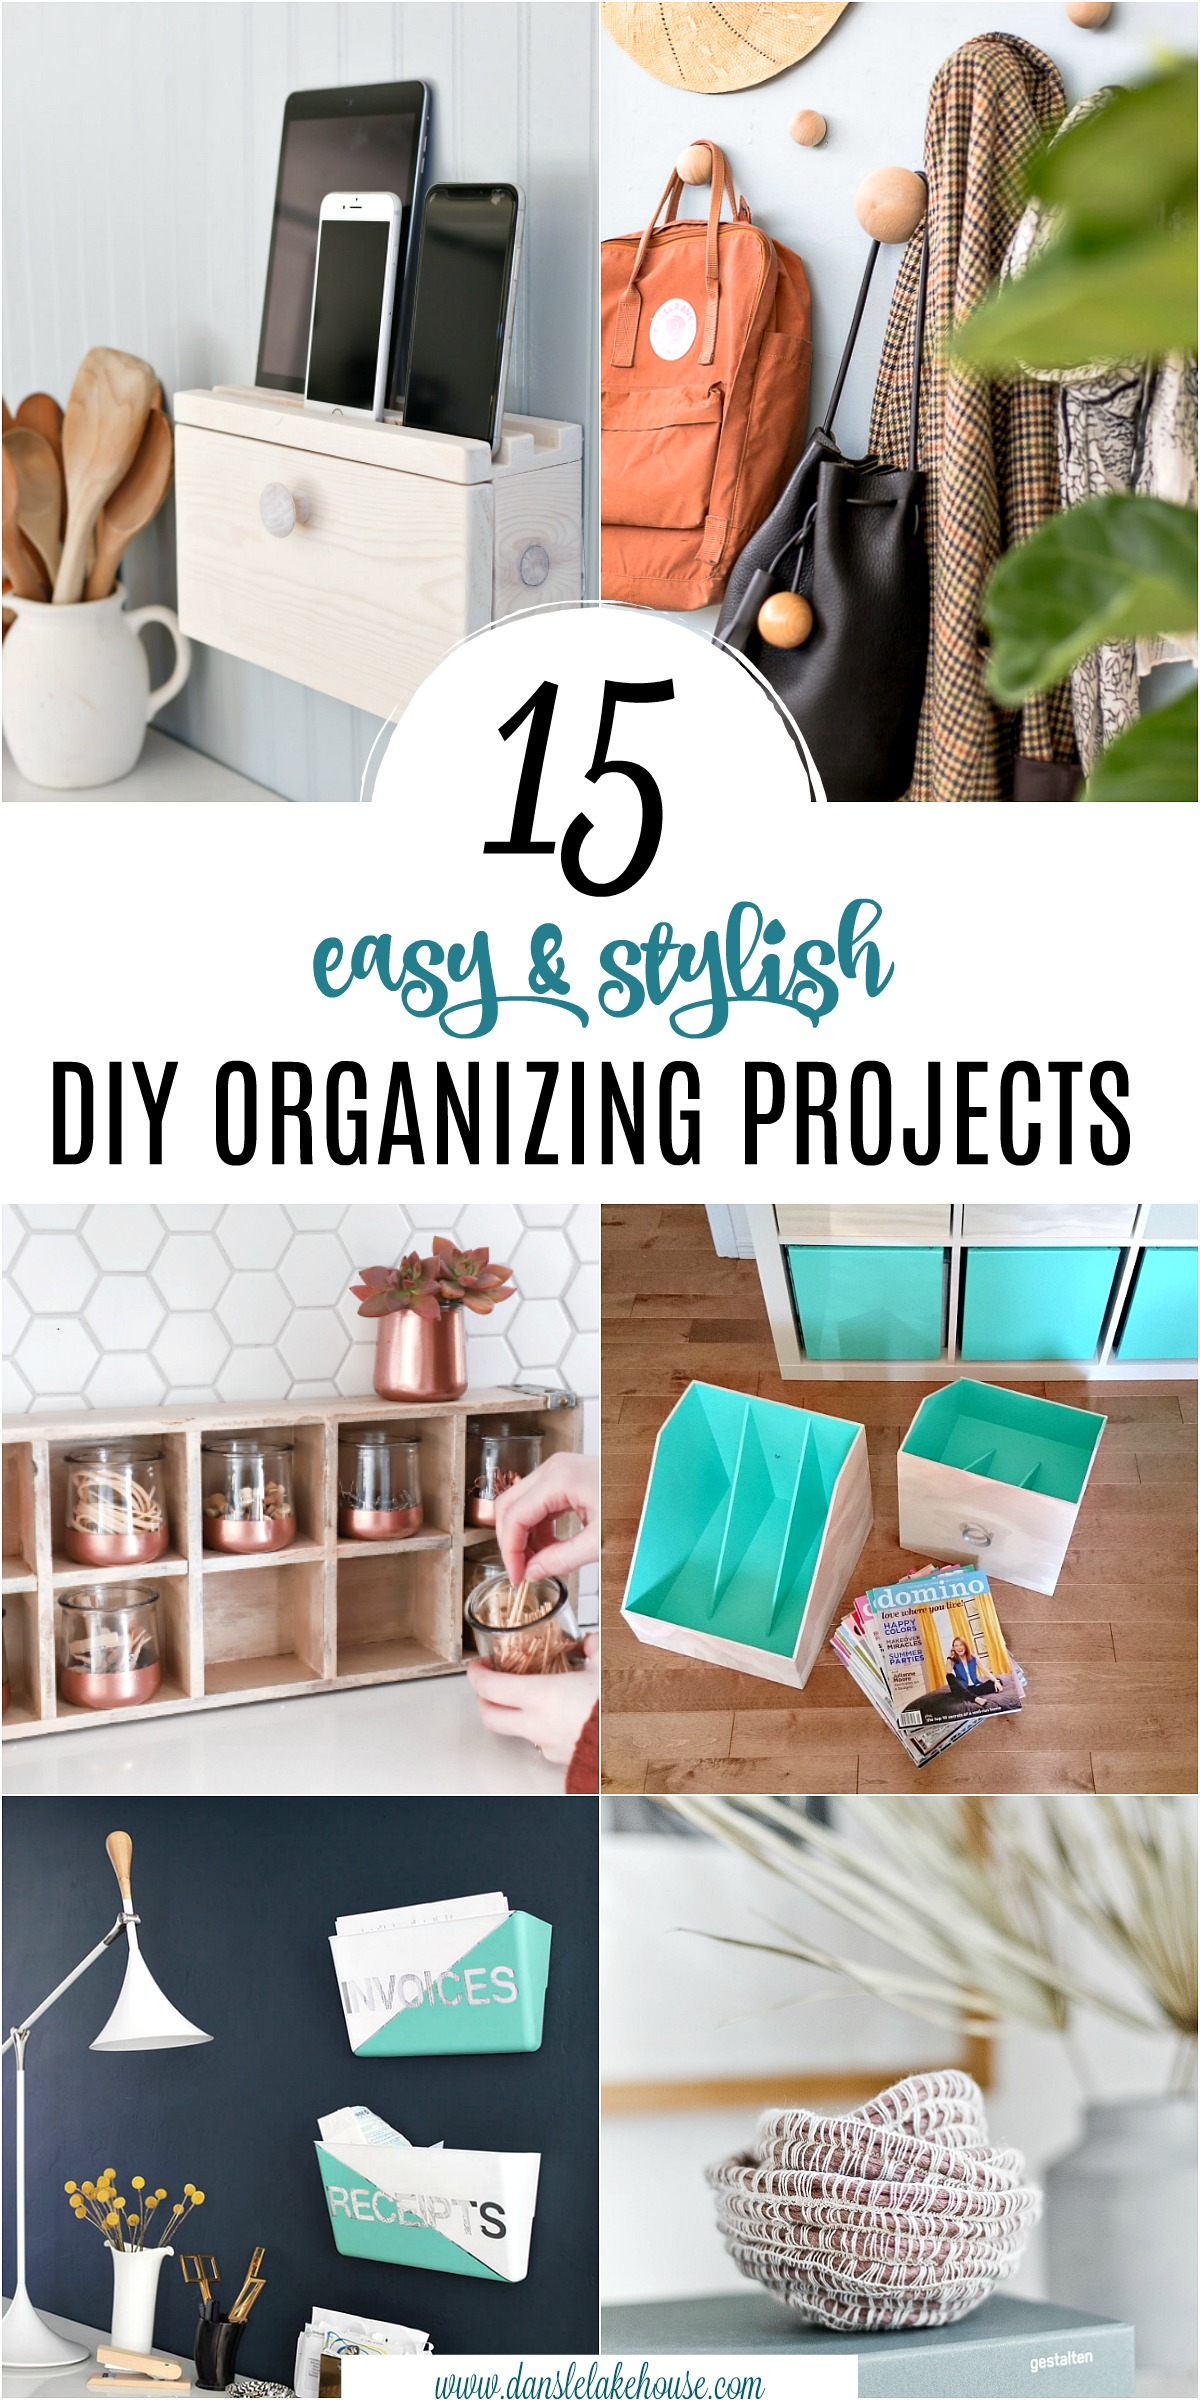 15 Stylish DIY Projects for Organizing Your Home #organizing #diy #diyhome #clutterbustingtips